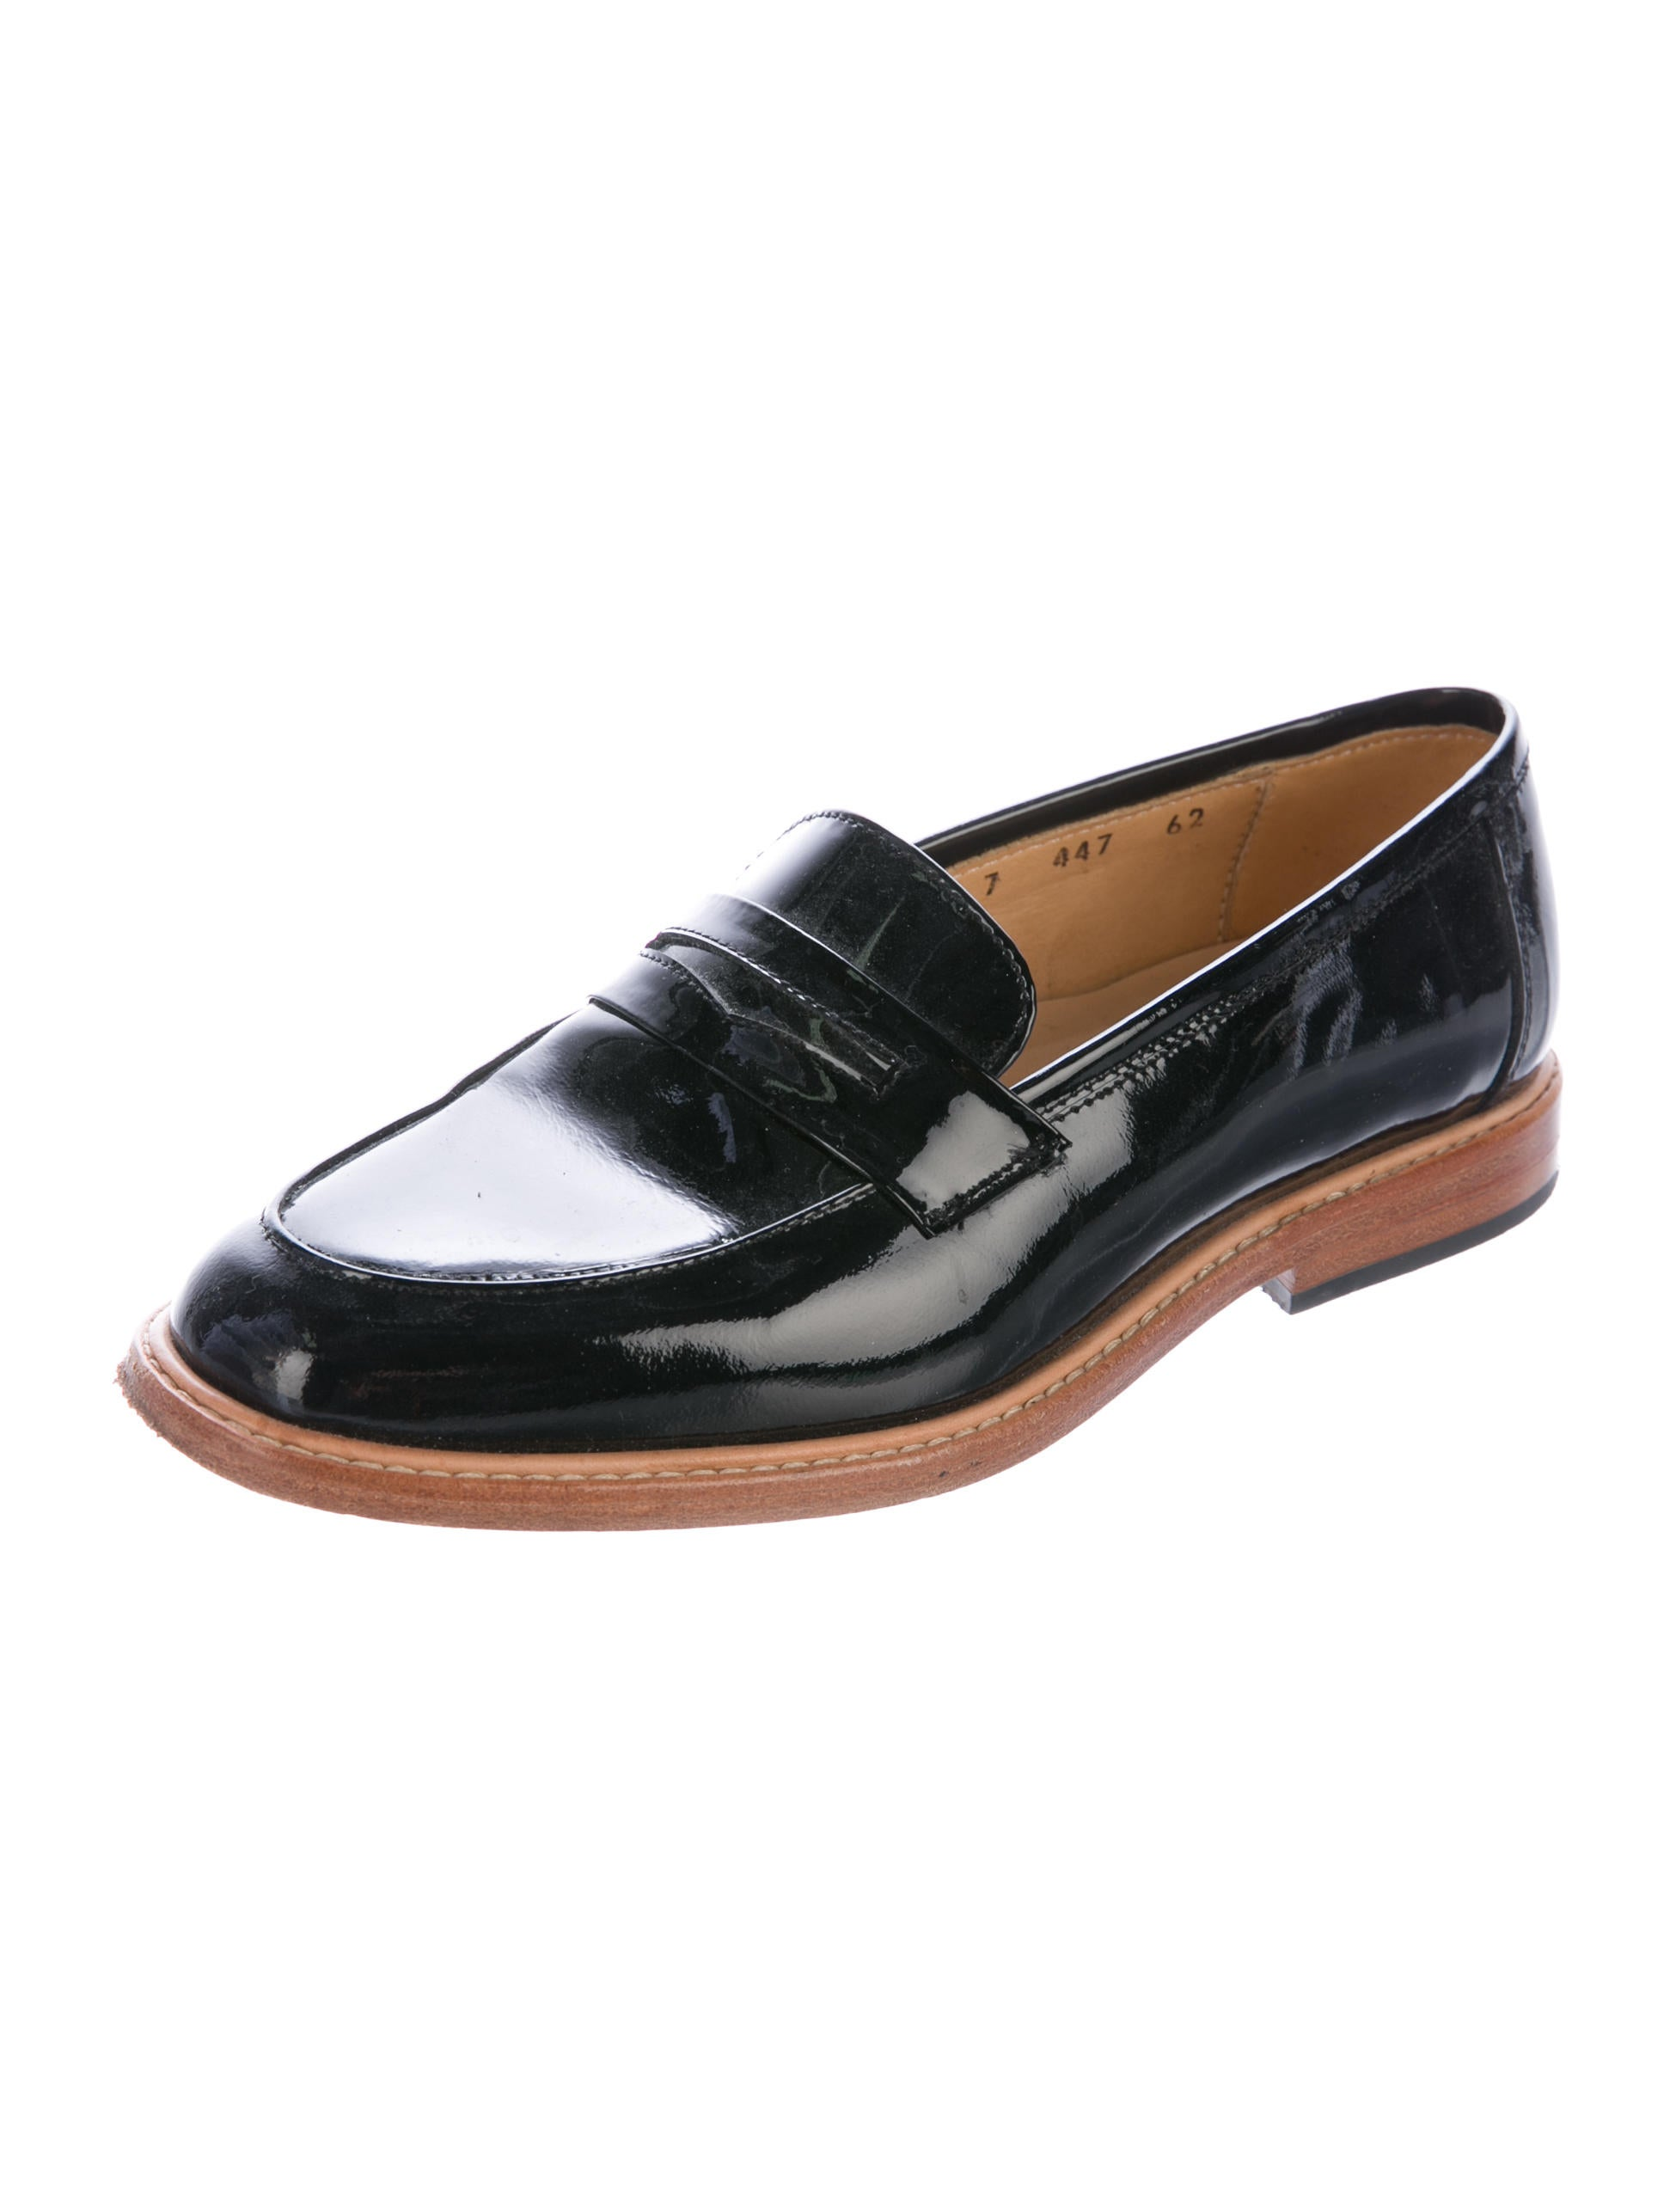 Free shipping on women's loafer flats, slip-on flats, and flat moccasins for women at ditilink.gq Shop from top brands like Tory Burch, TOMS, Sam Edelman and more. Totally free shipping & returns.